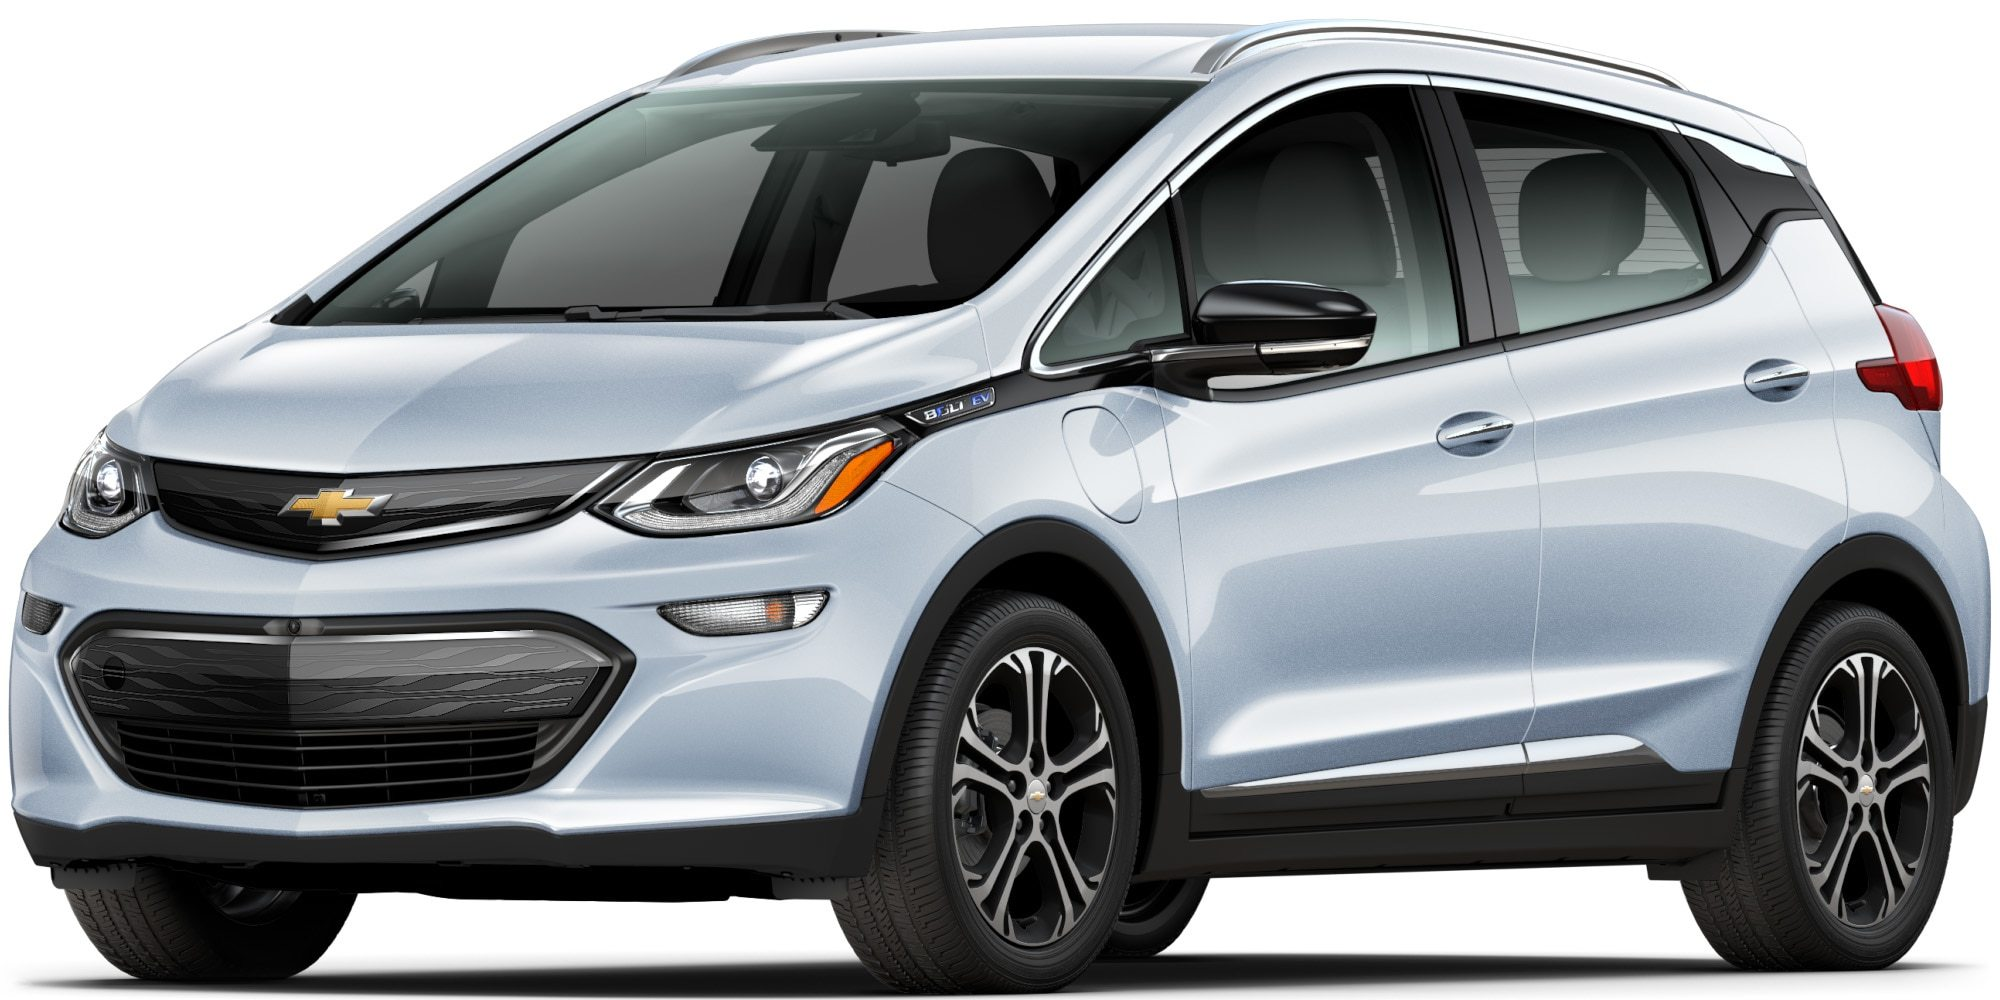 GM will release 20 electric models in the next five years.